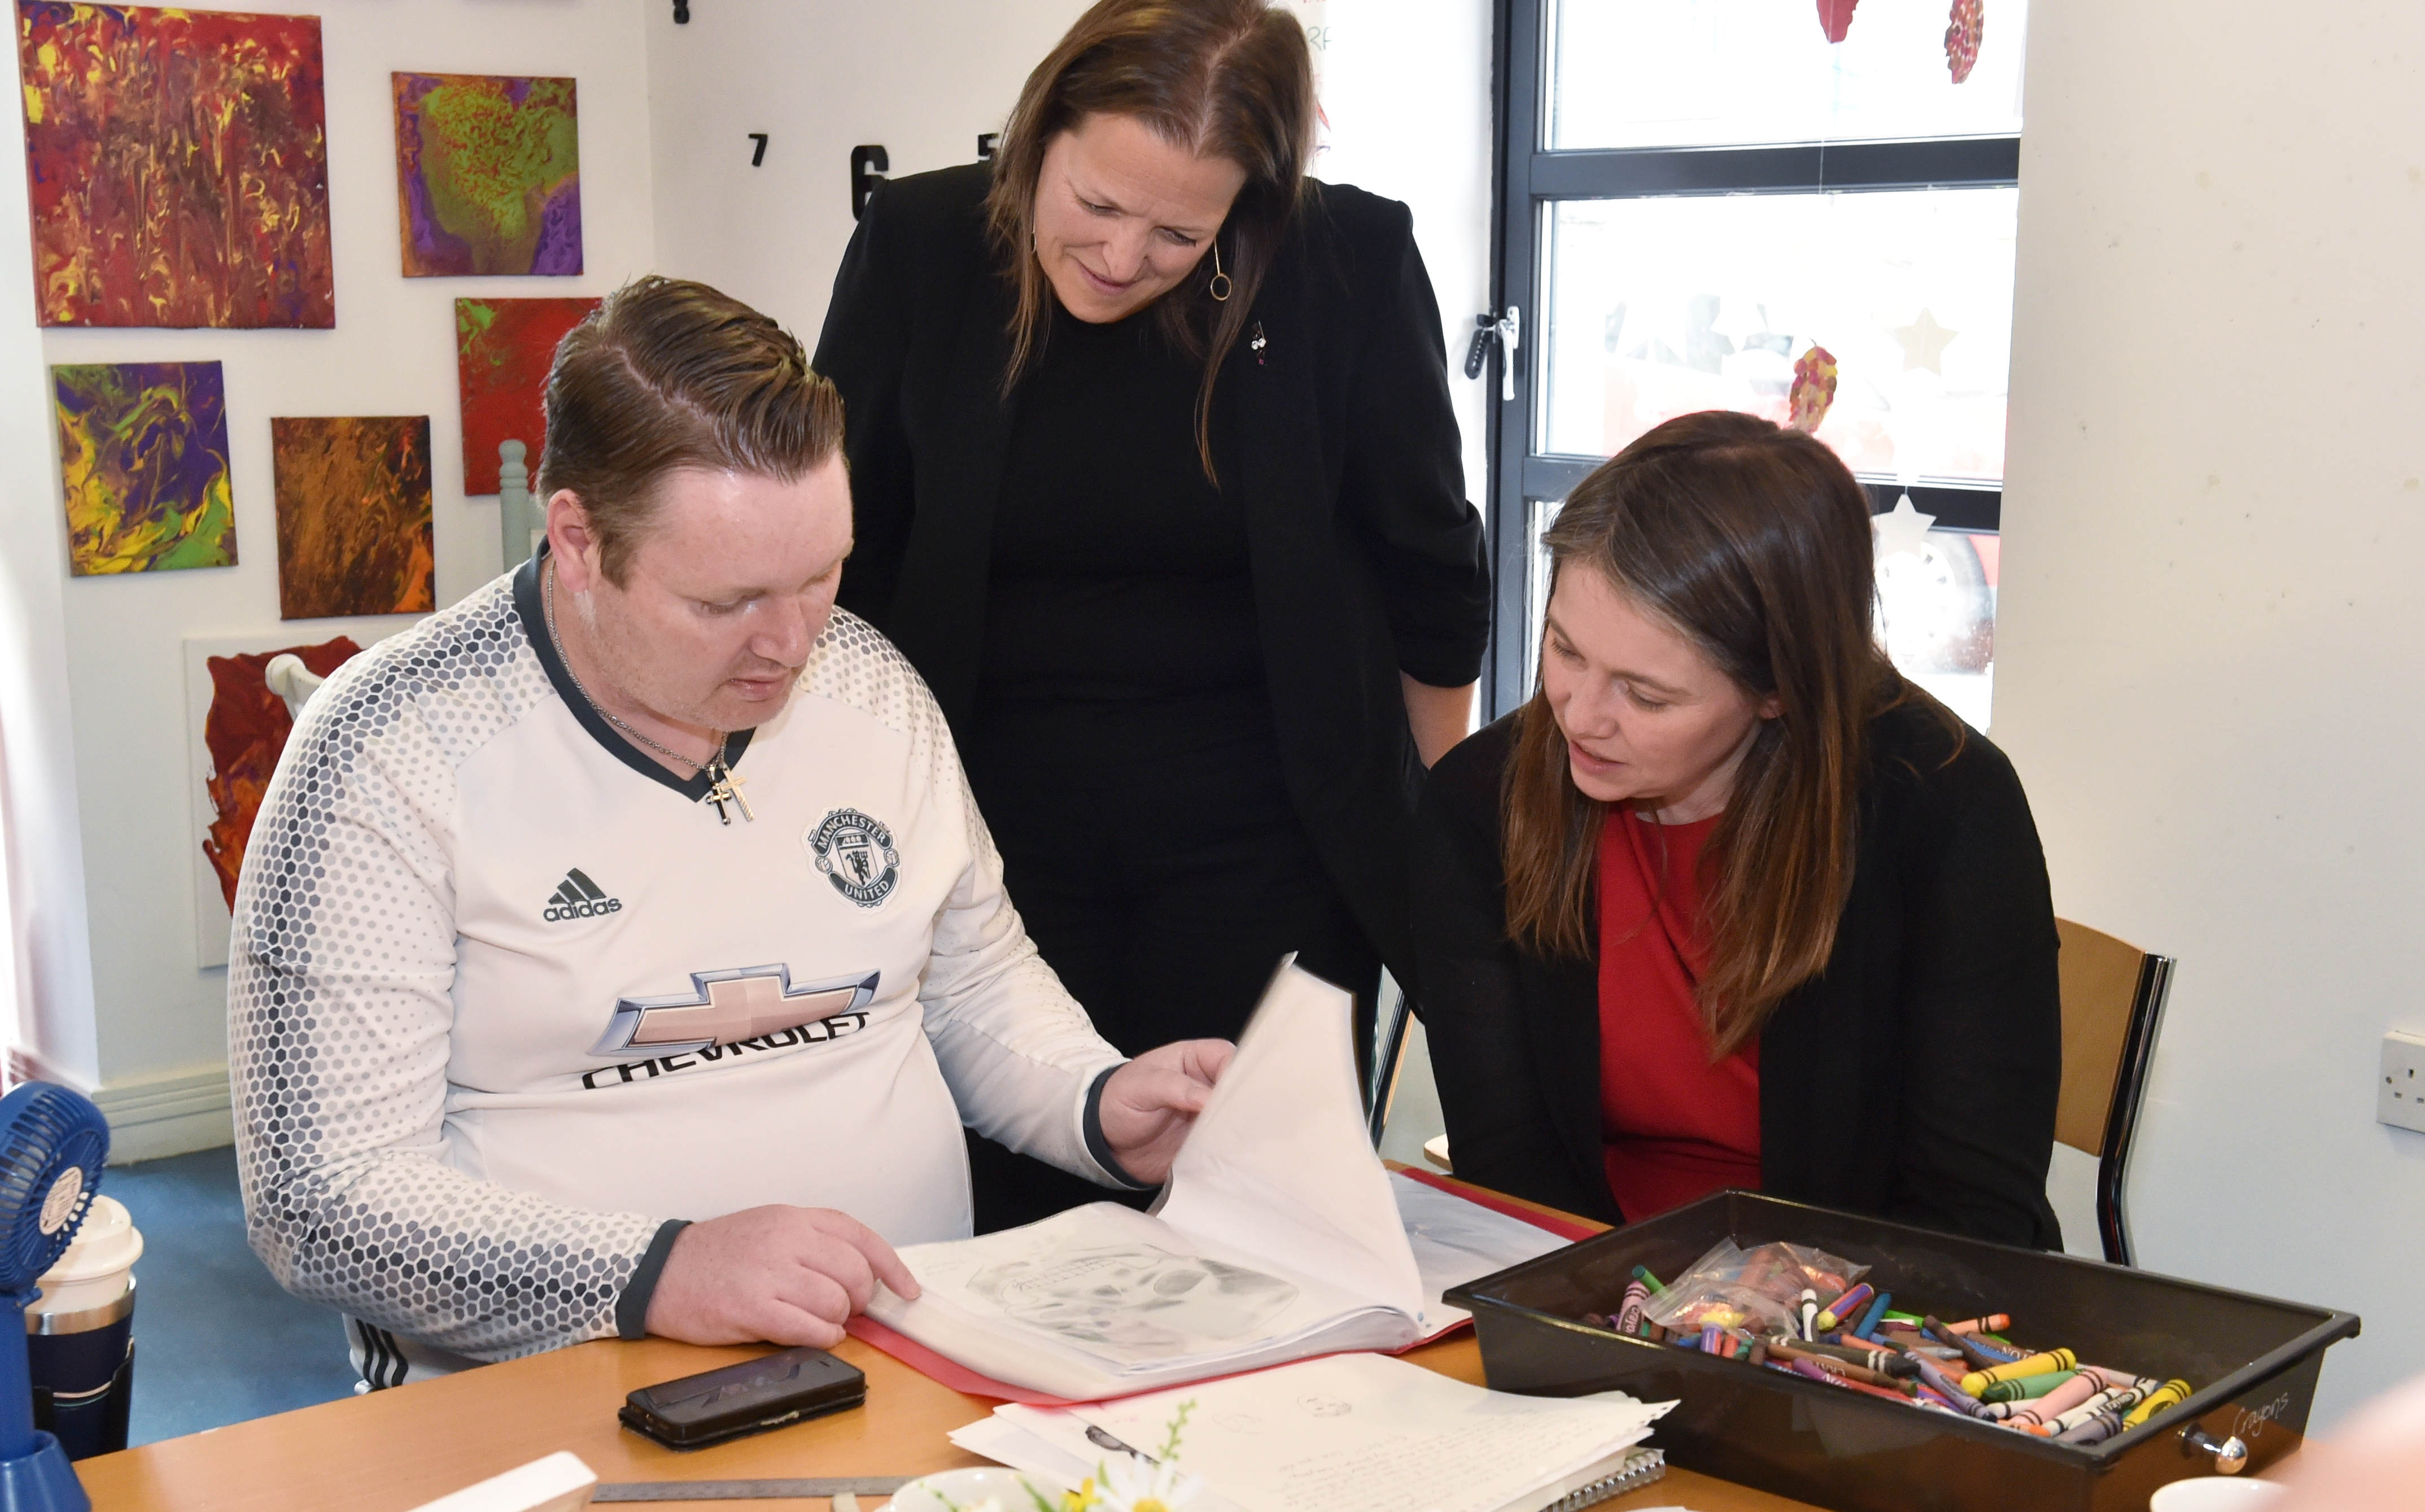 The Cabinet Secretary for Communities Aileen Campbell  (right) visited Aberdeen Foyer. She is speaking to service user Shaun Watt in the art class. Also pictured is Foyer Chief Executive Leona McDermid. Picture by COLIN RENNIE    August 20, 2019